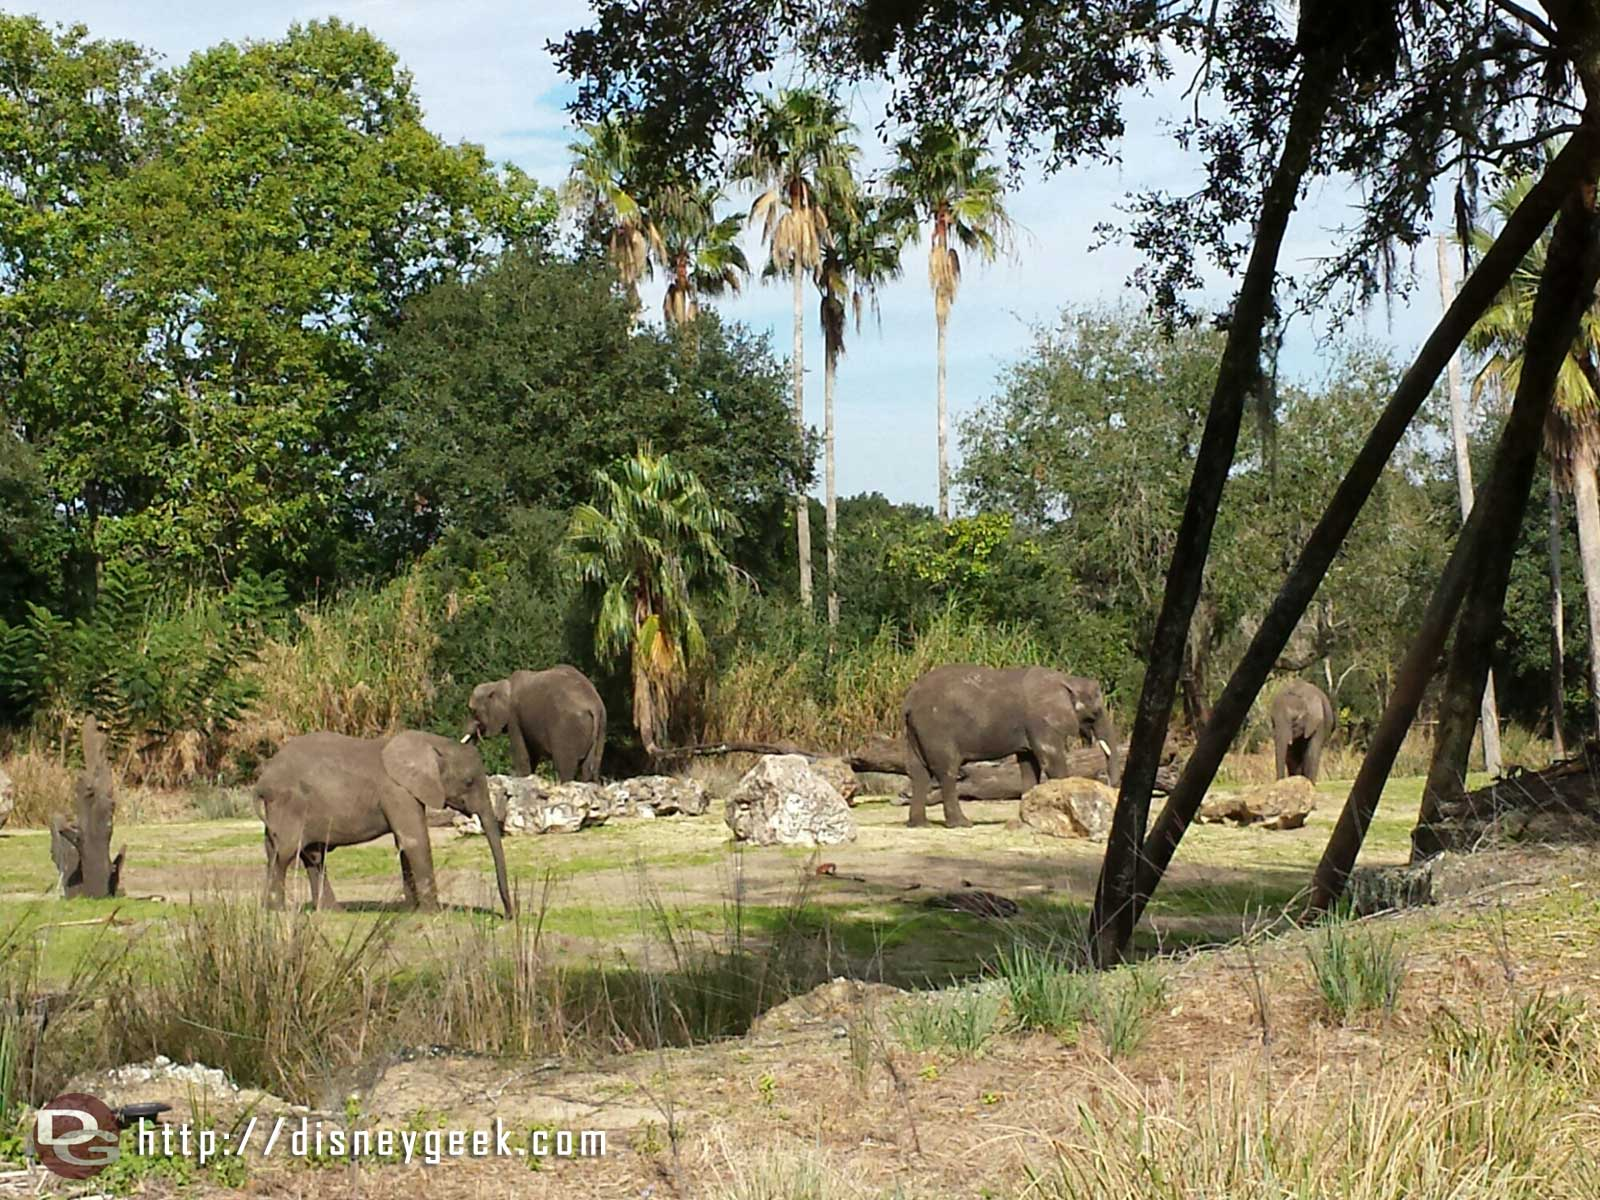 Elephants spotted while on safari – Disney's Animal Kingdom